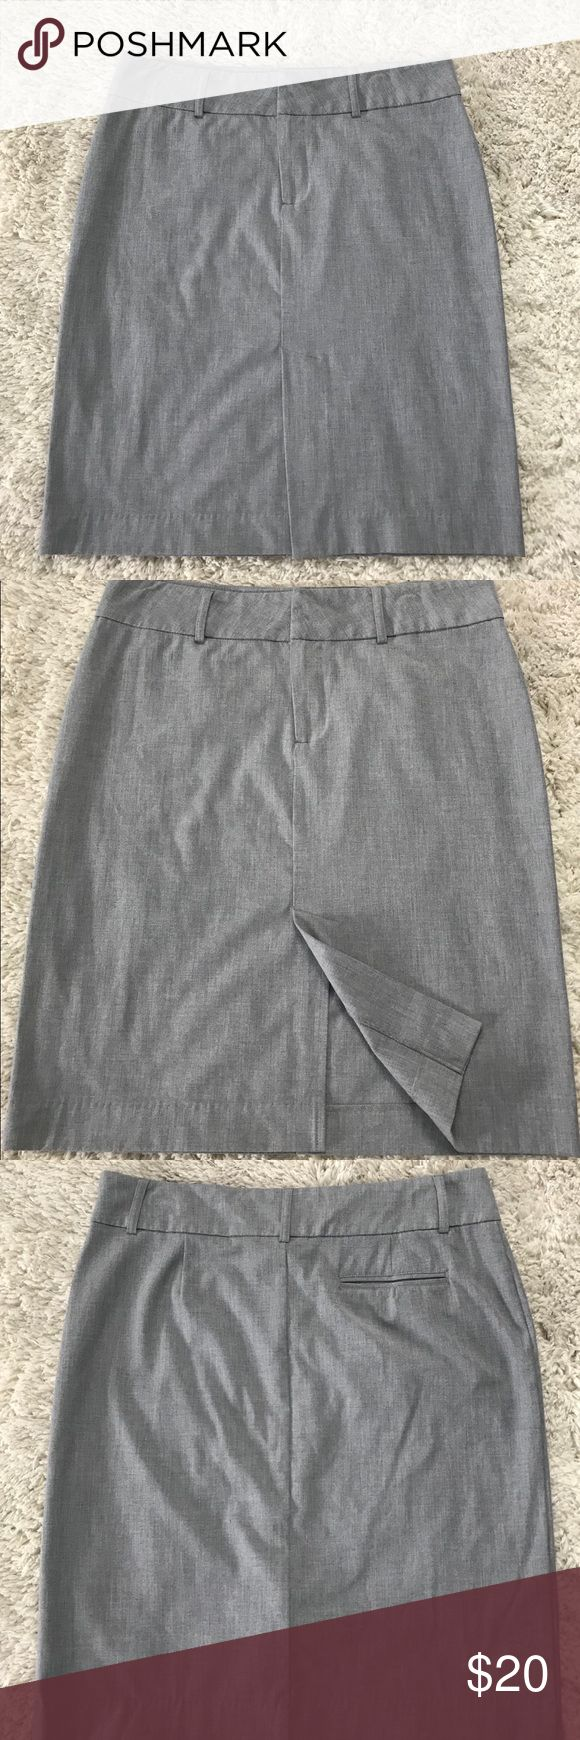 """Women's Grey Old Navy Pencil Skirt Career Wardrobe Staple! A soft, neutral grey color that will go with so many cute tops or pair with a blazer. Skirt length is 25"""". Size 14. EUC  Smoke free, pet free home Old Navy Skirts Pencil"""